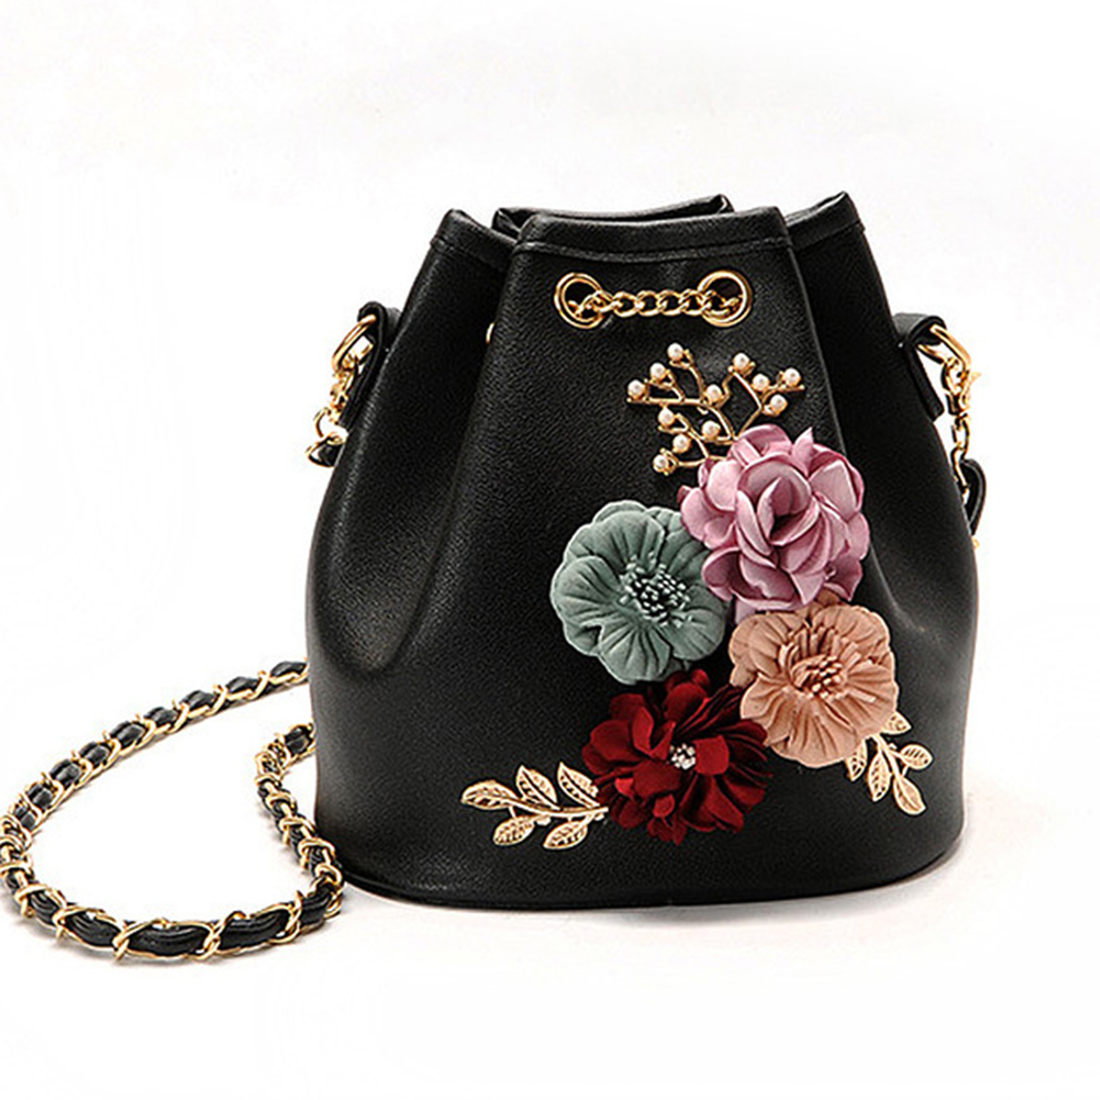 3 Color Ladies' Leather Handbag Bags Fashion With 3D Floral Single-Shoulder Bucket Bag Drawstring Cross Body Chain Bags Hot ethnic women tassel bucket bag fashion long chain crossbody bag drawstring shoulder bags small handbag vintage shoulder bags hot